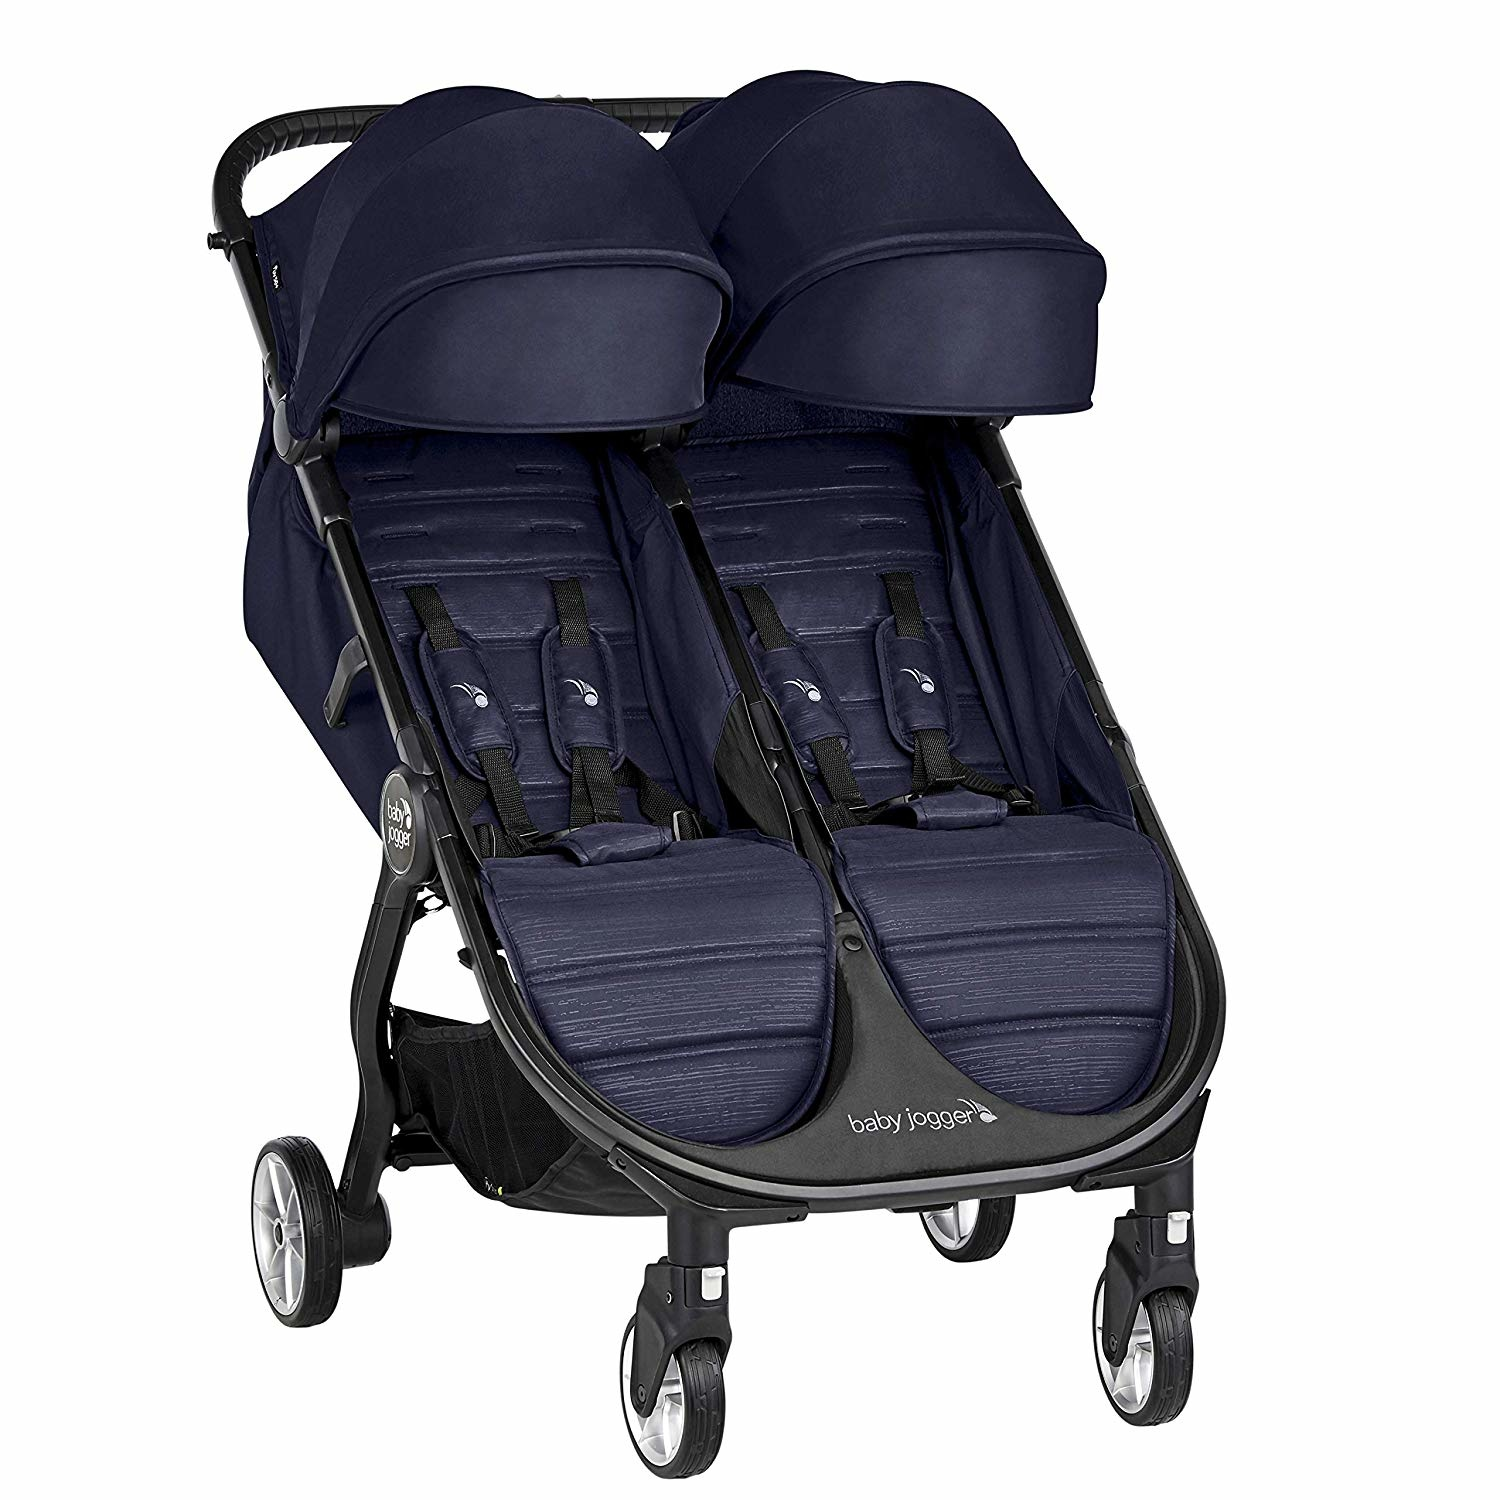 Baby Jogger Baby Jogger 2019 City Tour 2 Double Stroller floor model(in store/curbside exclusive)